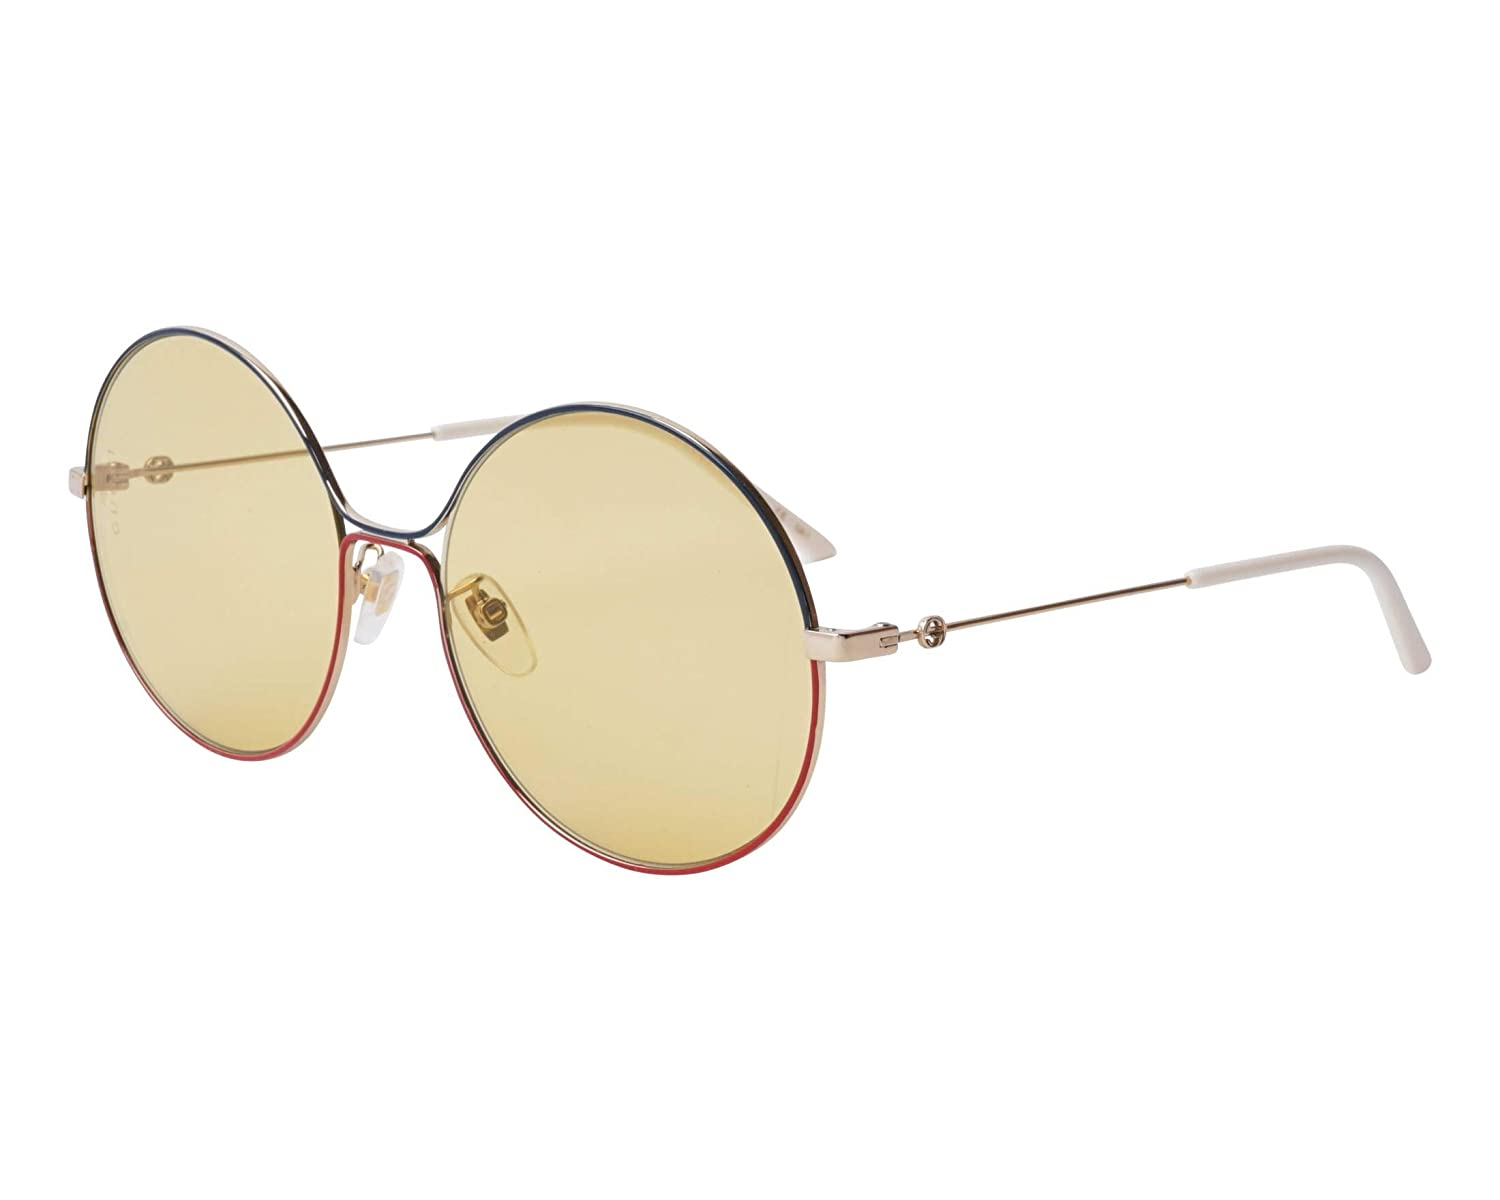 af88ce787 Amazon.com: Gucci GG 0395S 005 Green Red Gold Metal Round Sunglasses Light  Brown Lens: Clothing